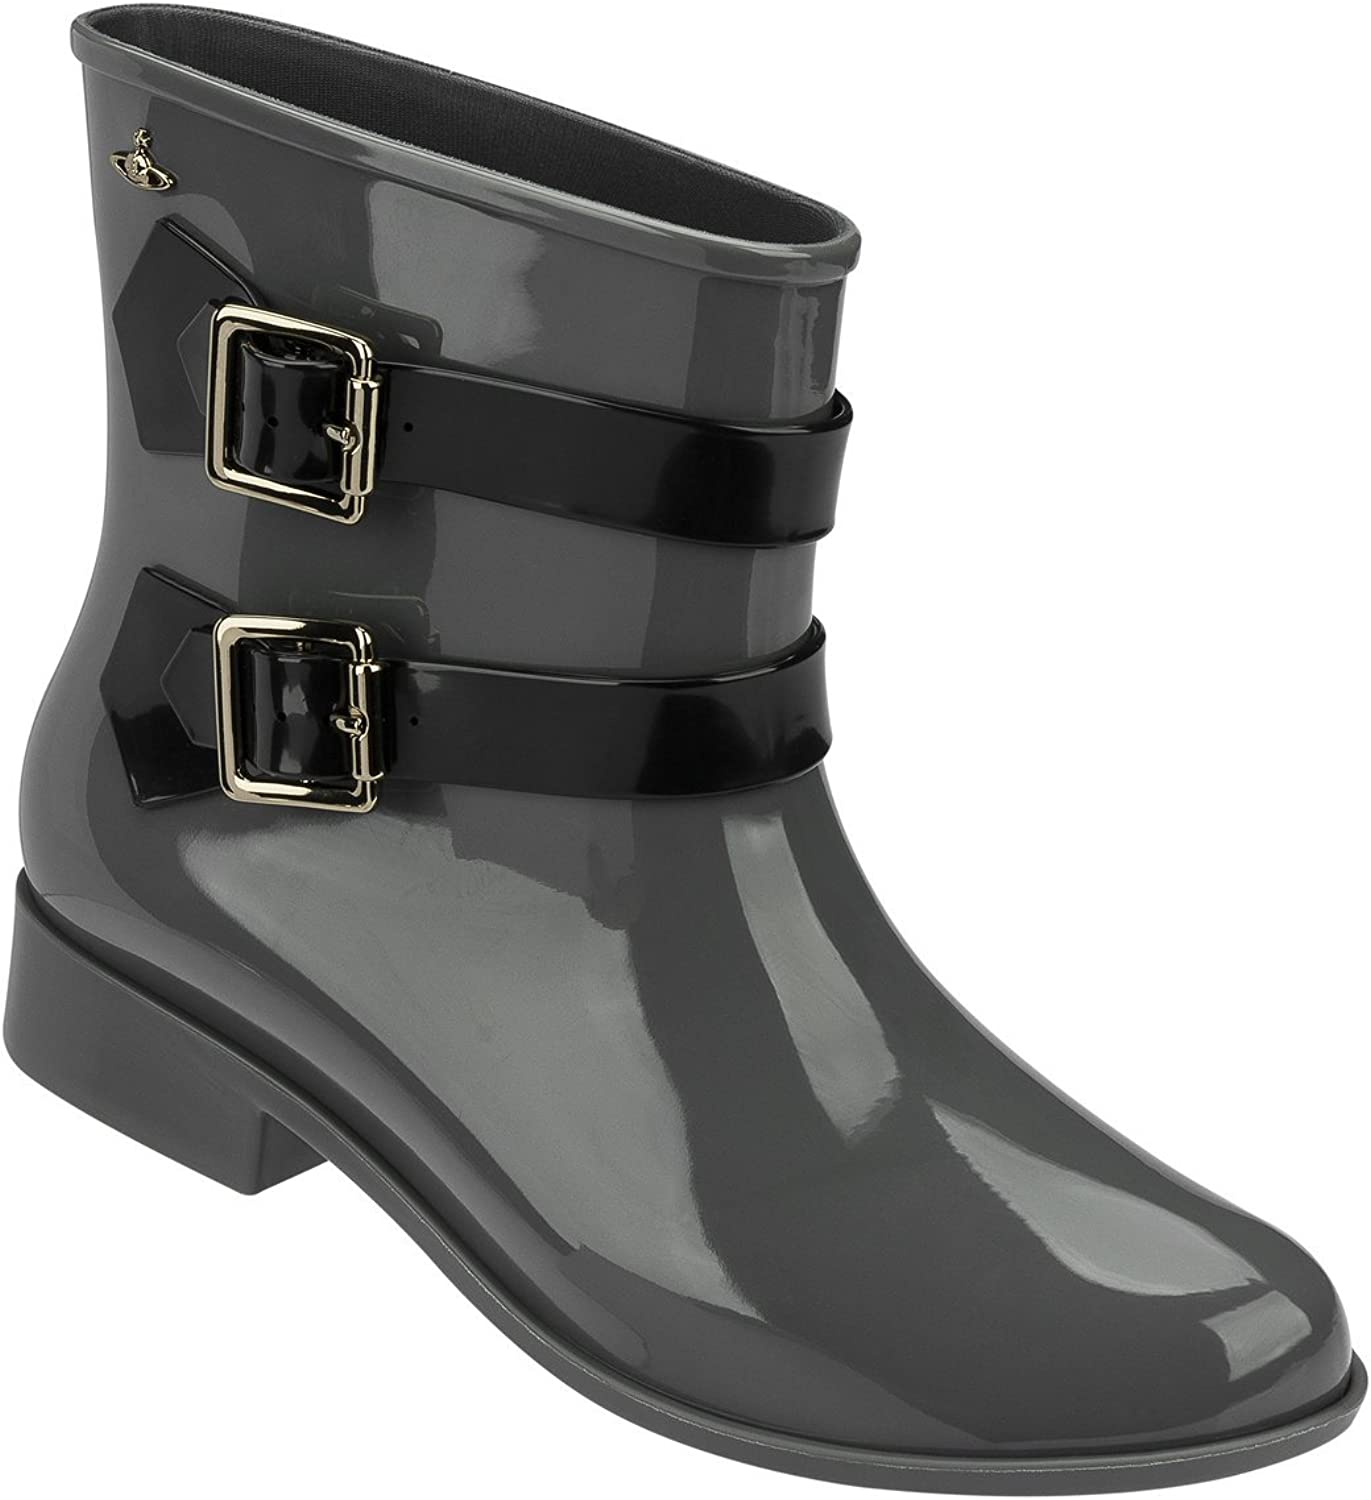 Melissa Vivienne Westwood Anglomania Moon DUST Boot Grey Black Women's